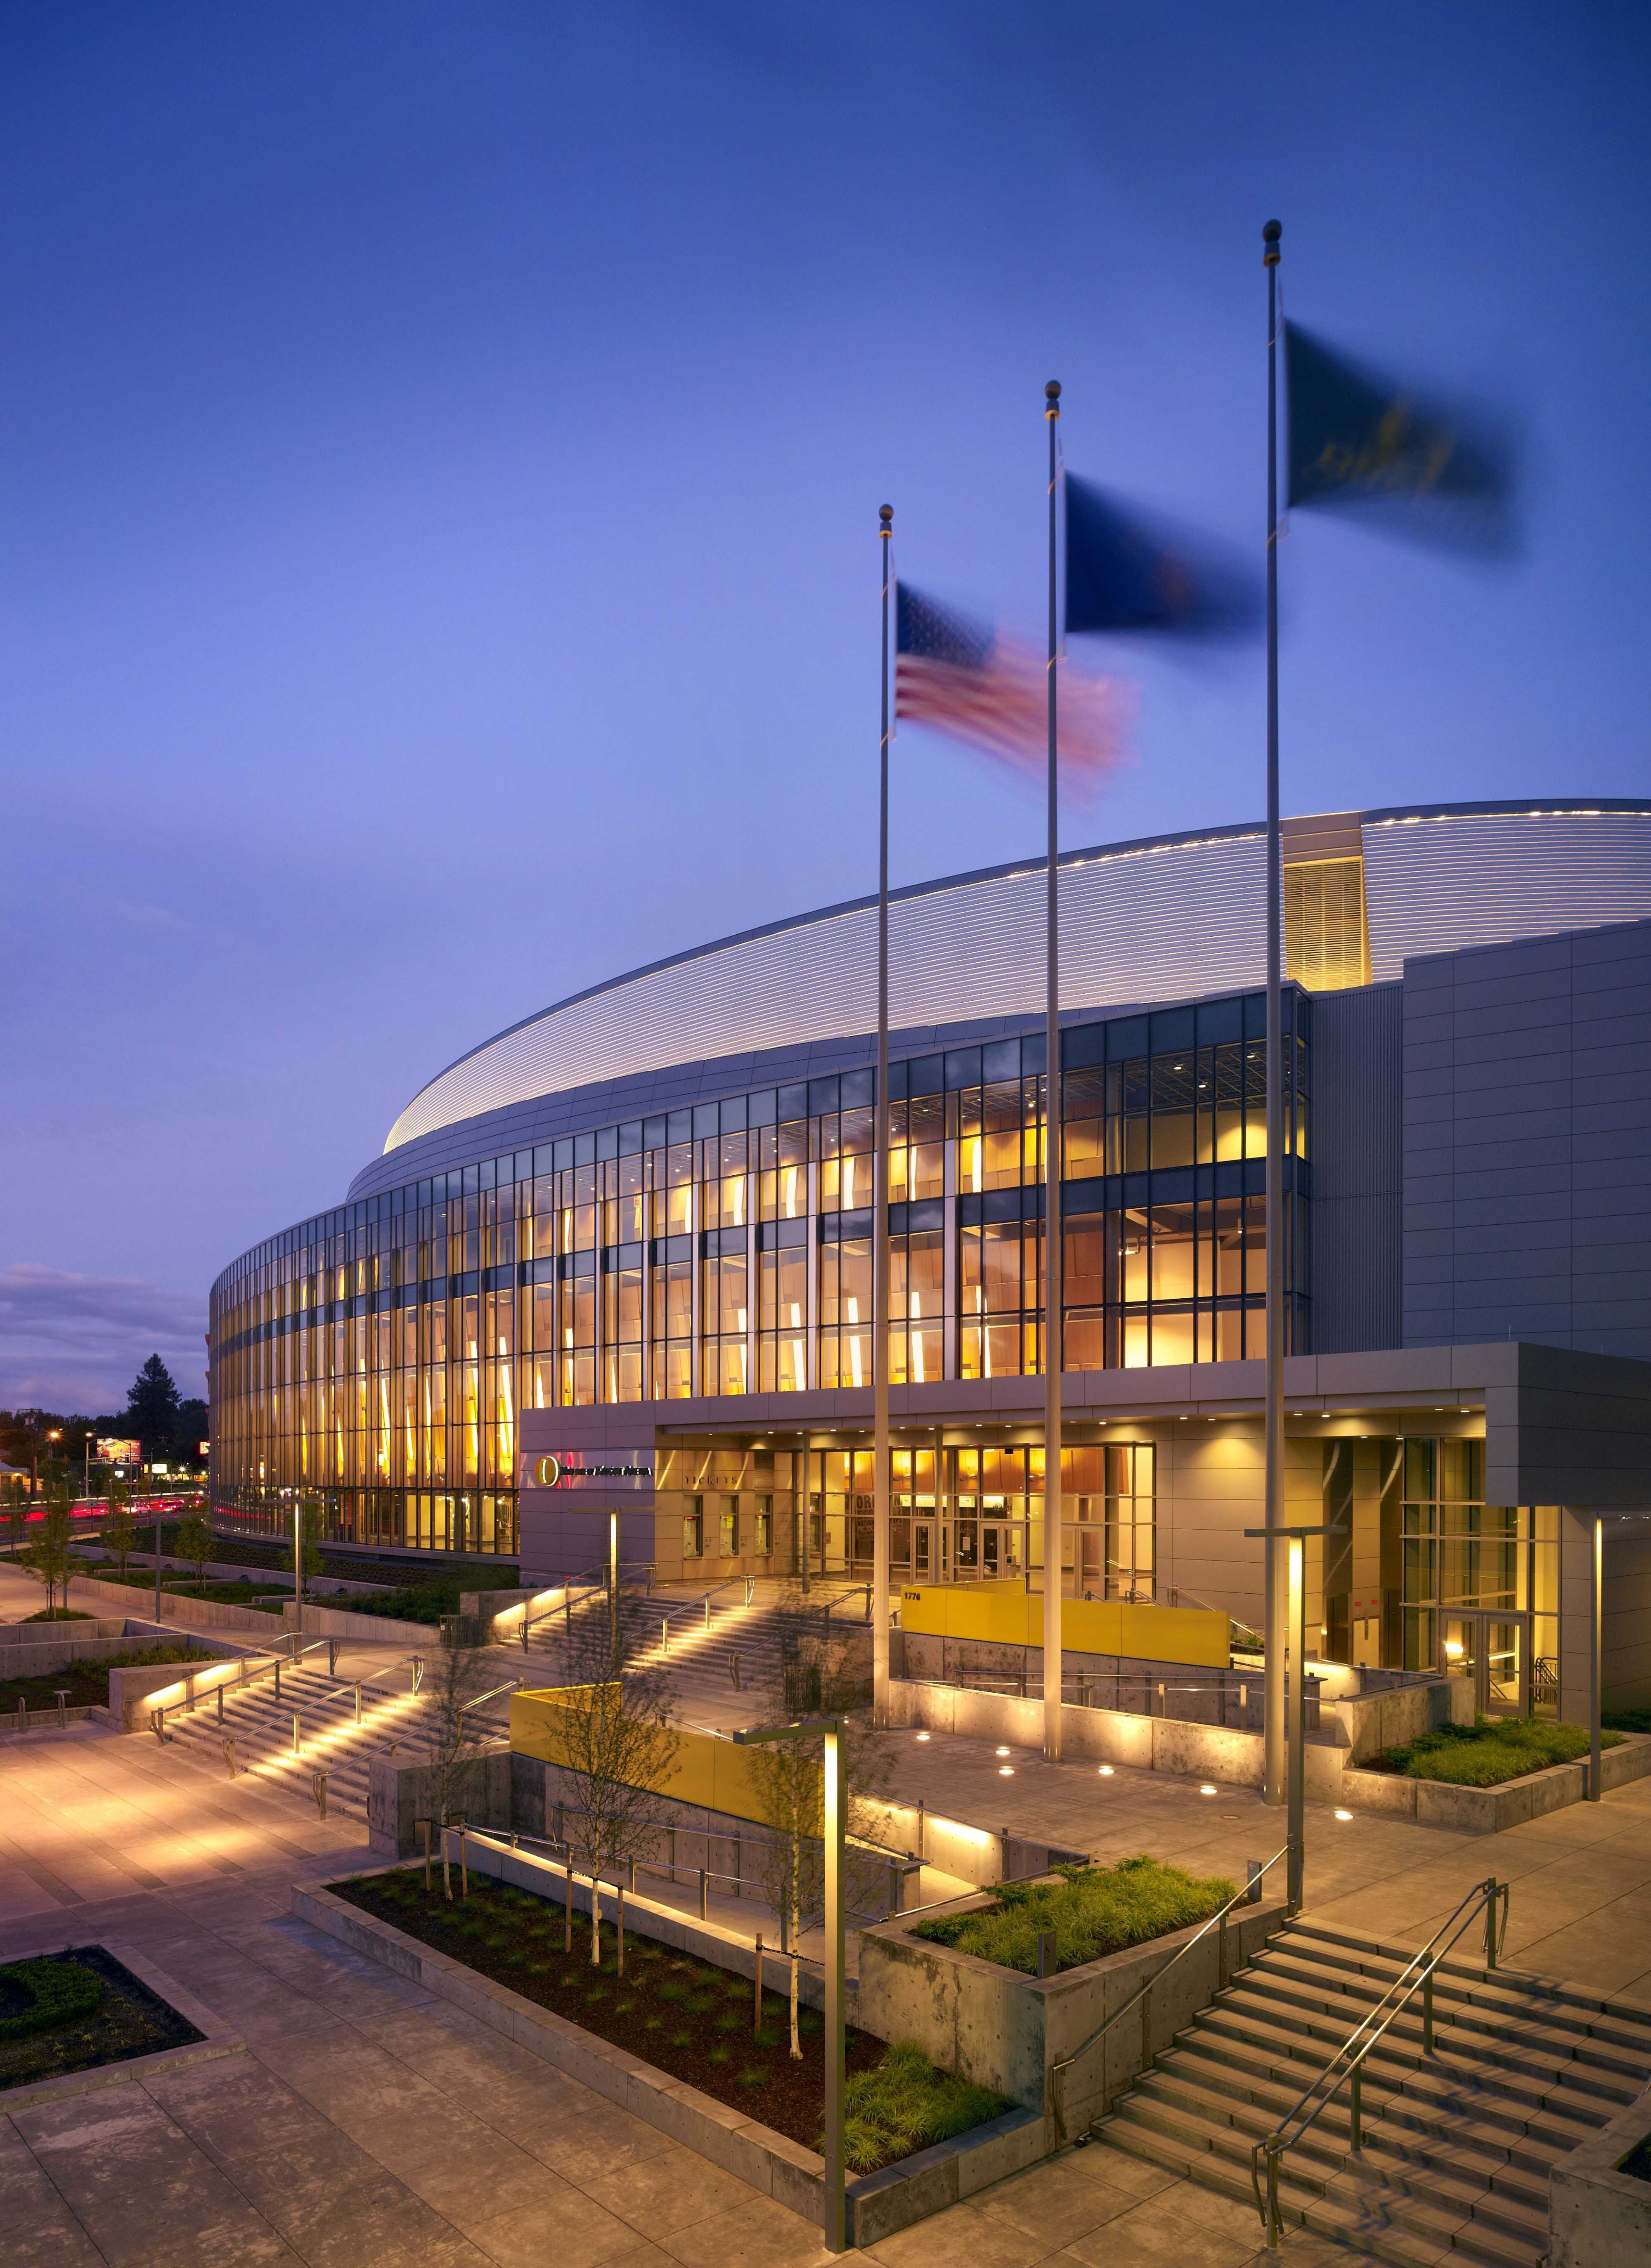 Education stadia and arenas sports and leisure healthcare residential - Matthew Knight Arena University Of Oregon